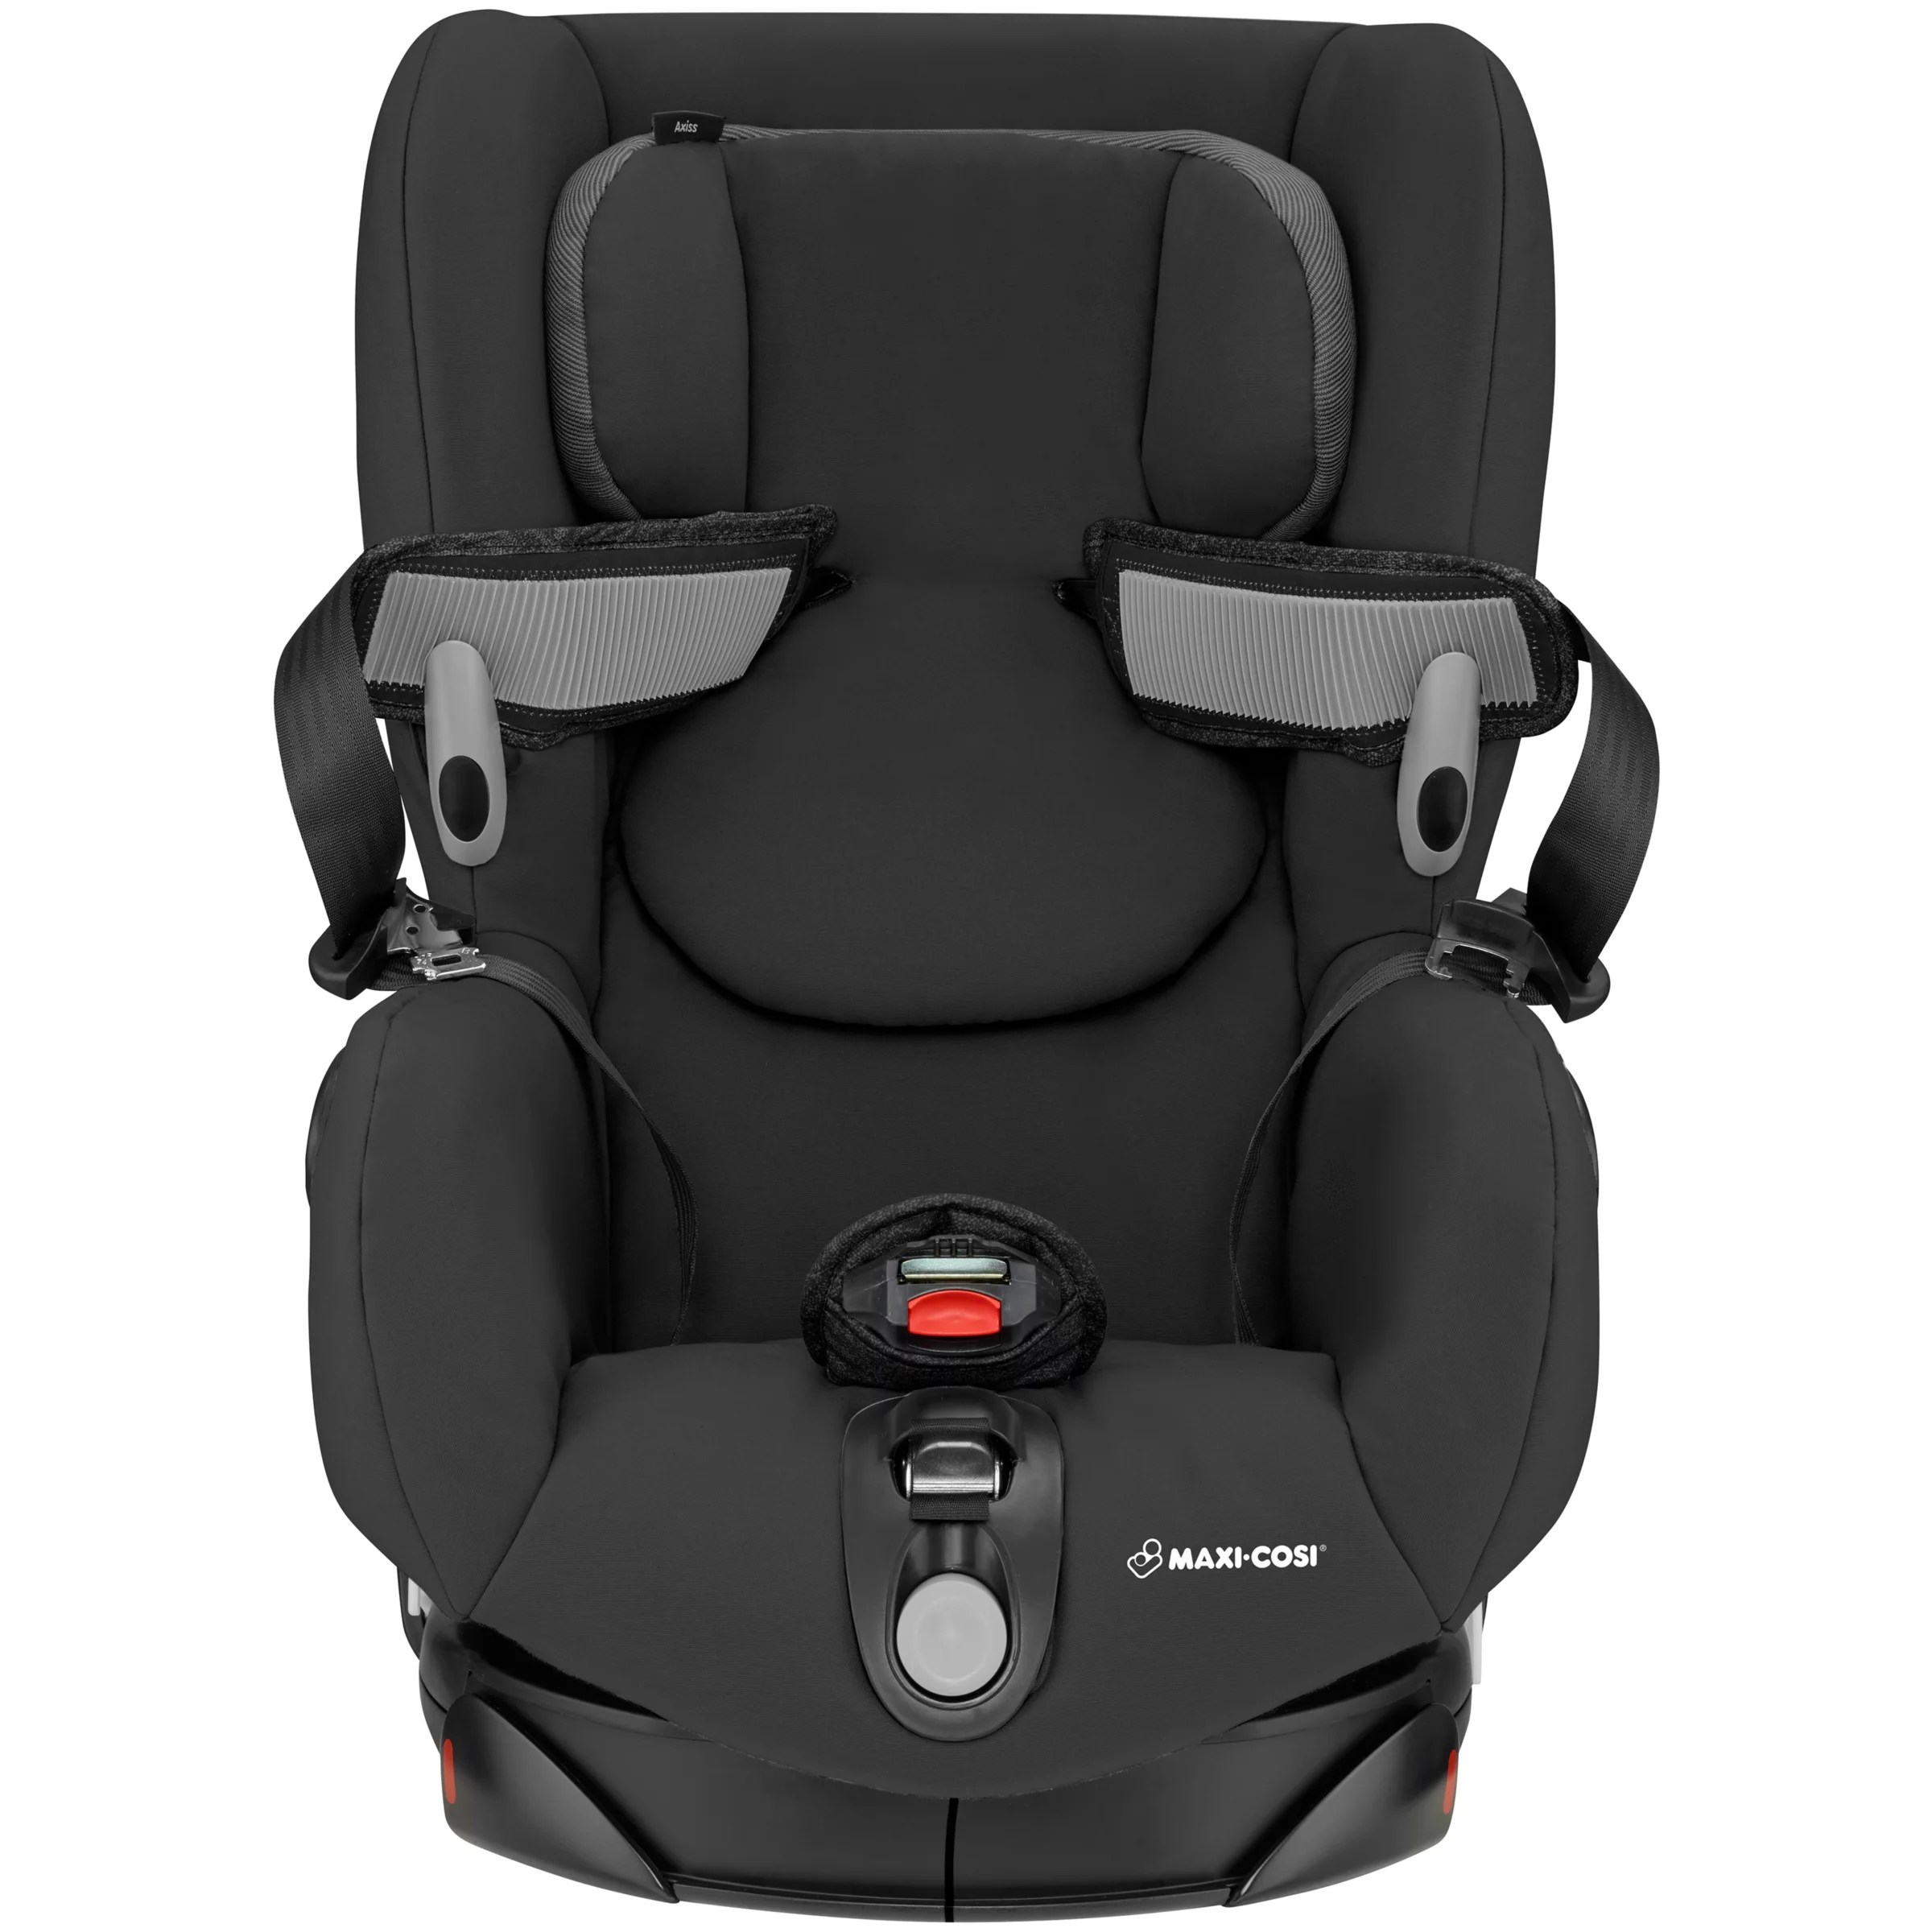 Maxi Cosi Axiss Baby Car Seat Maxi Cosi Axiss Group 1 Car Seat Nomad Black At John